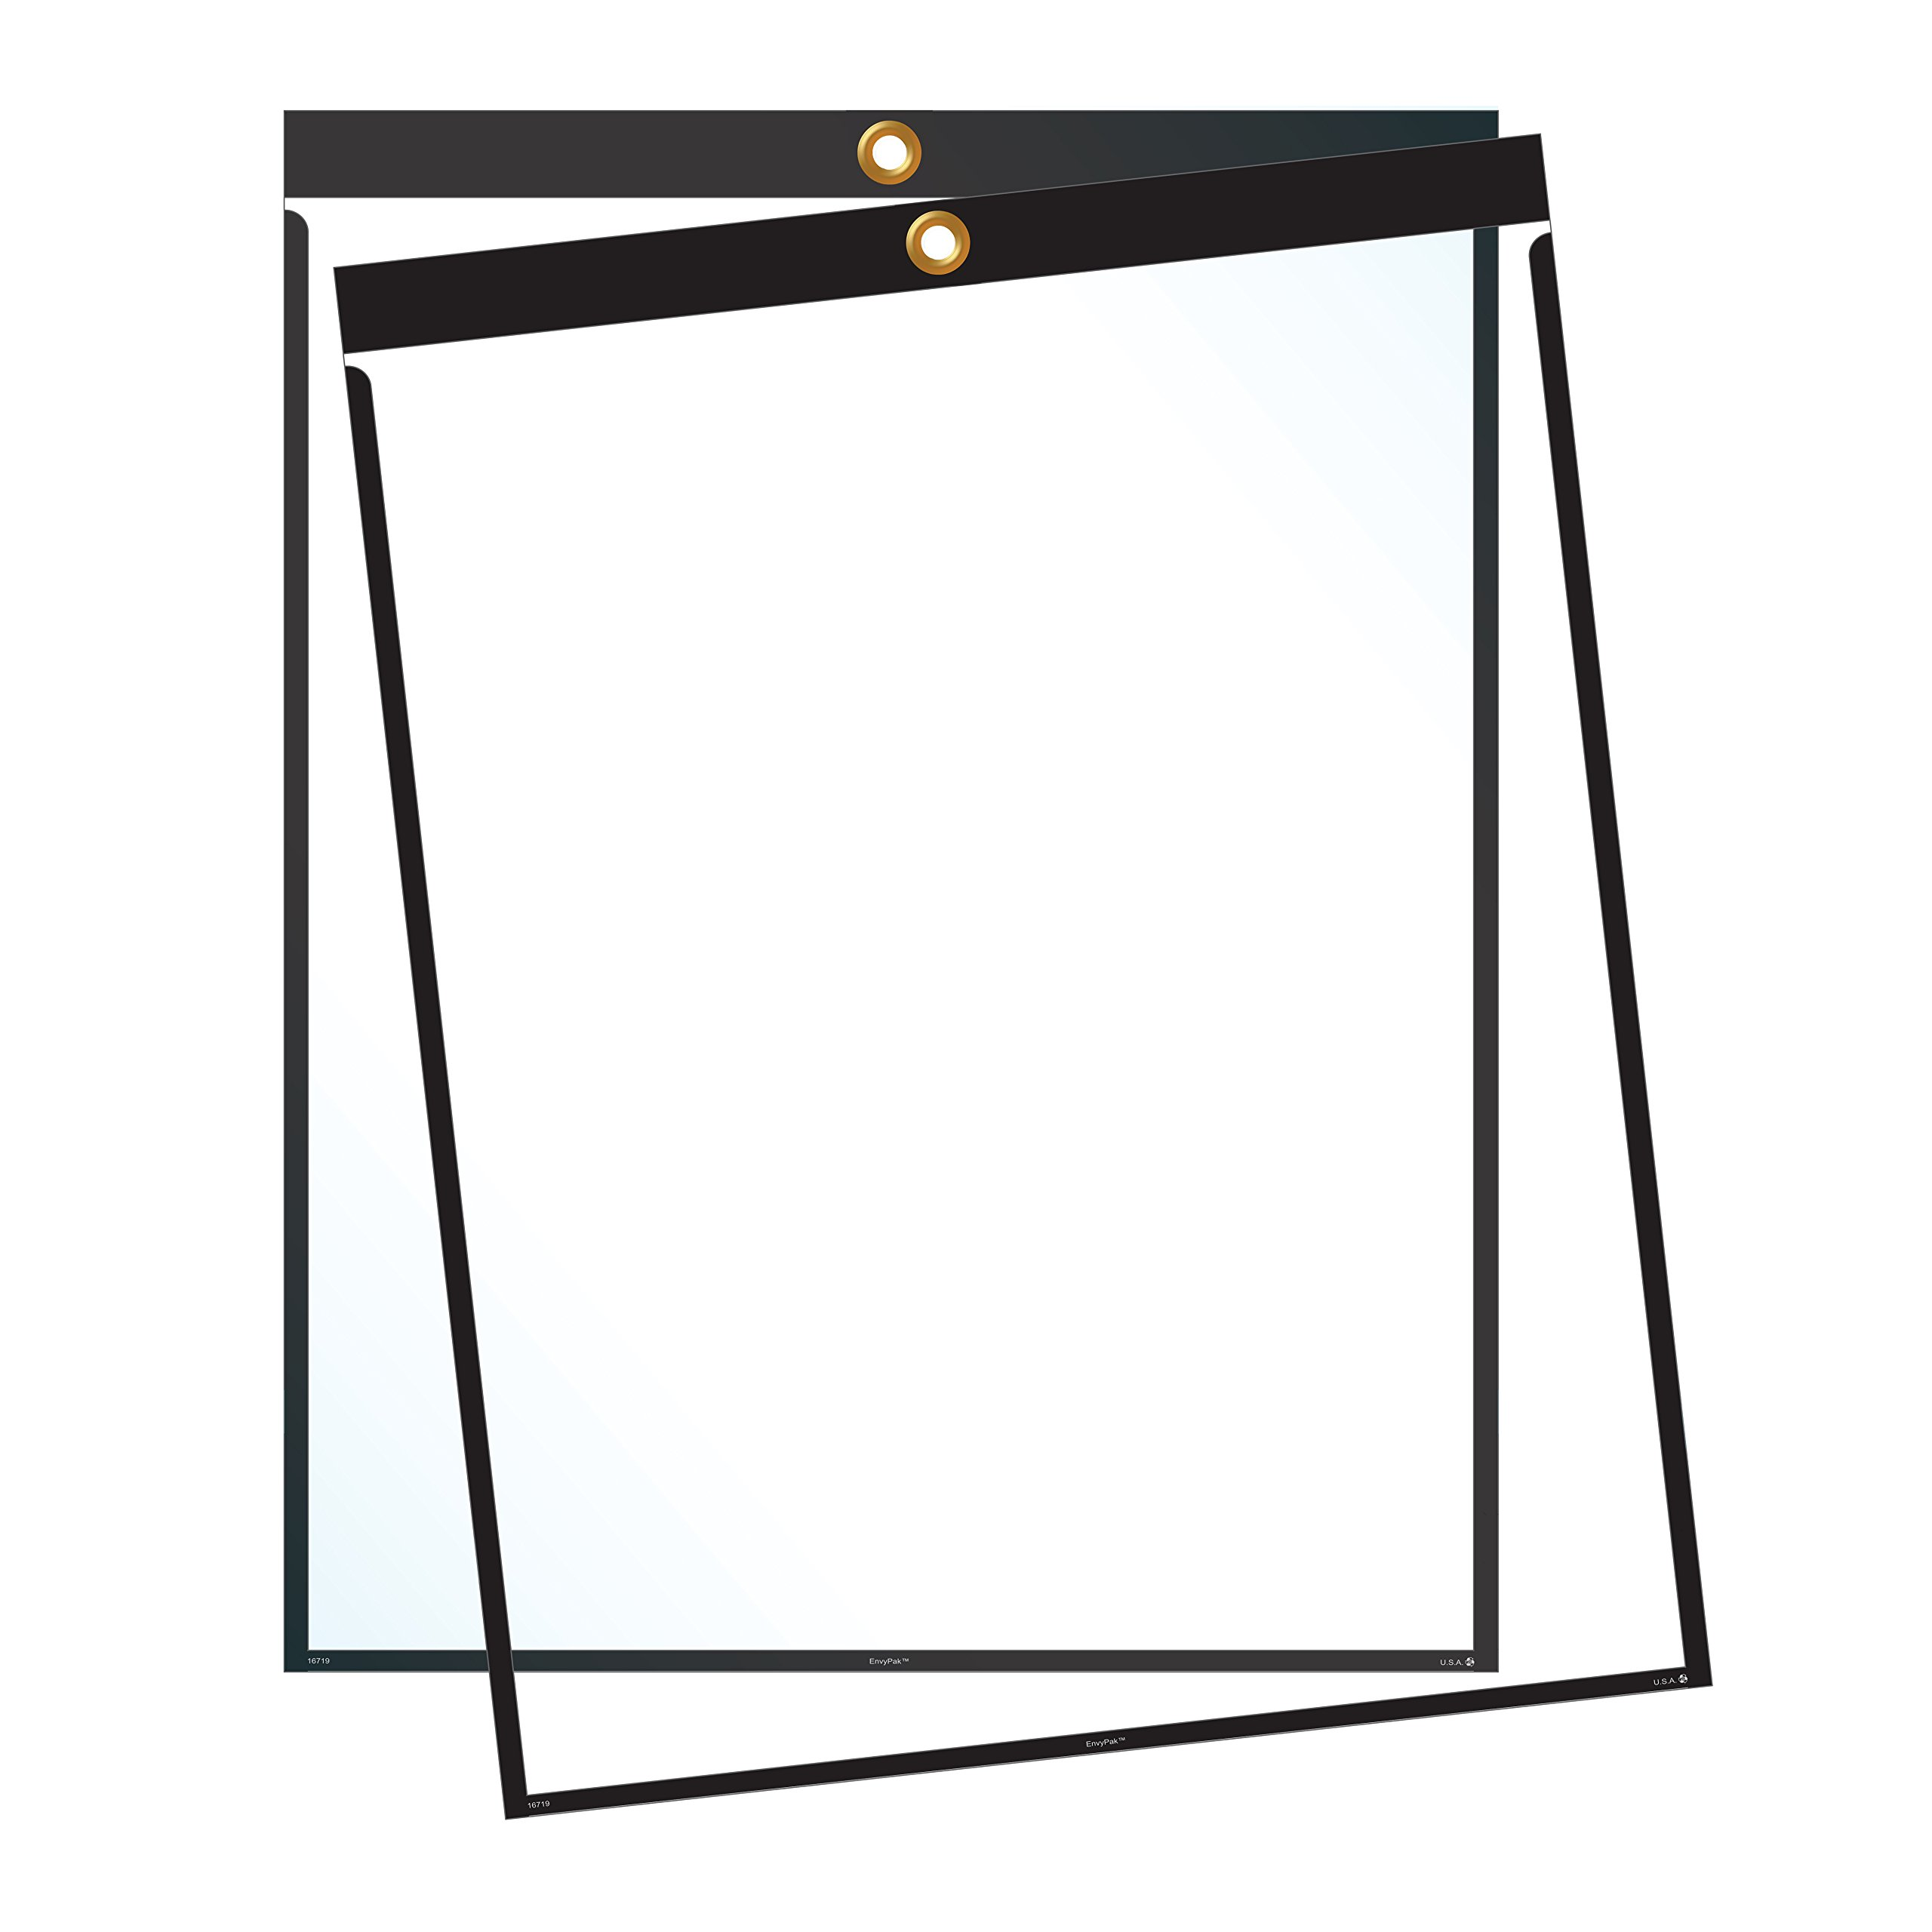 Job Ticket Holders - 9''x12'' - Pack of 30 (black) Top-loading with eyelet for hanging